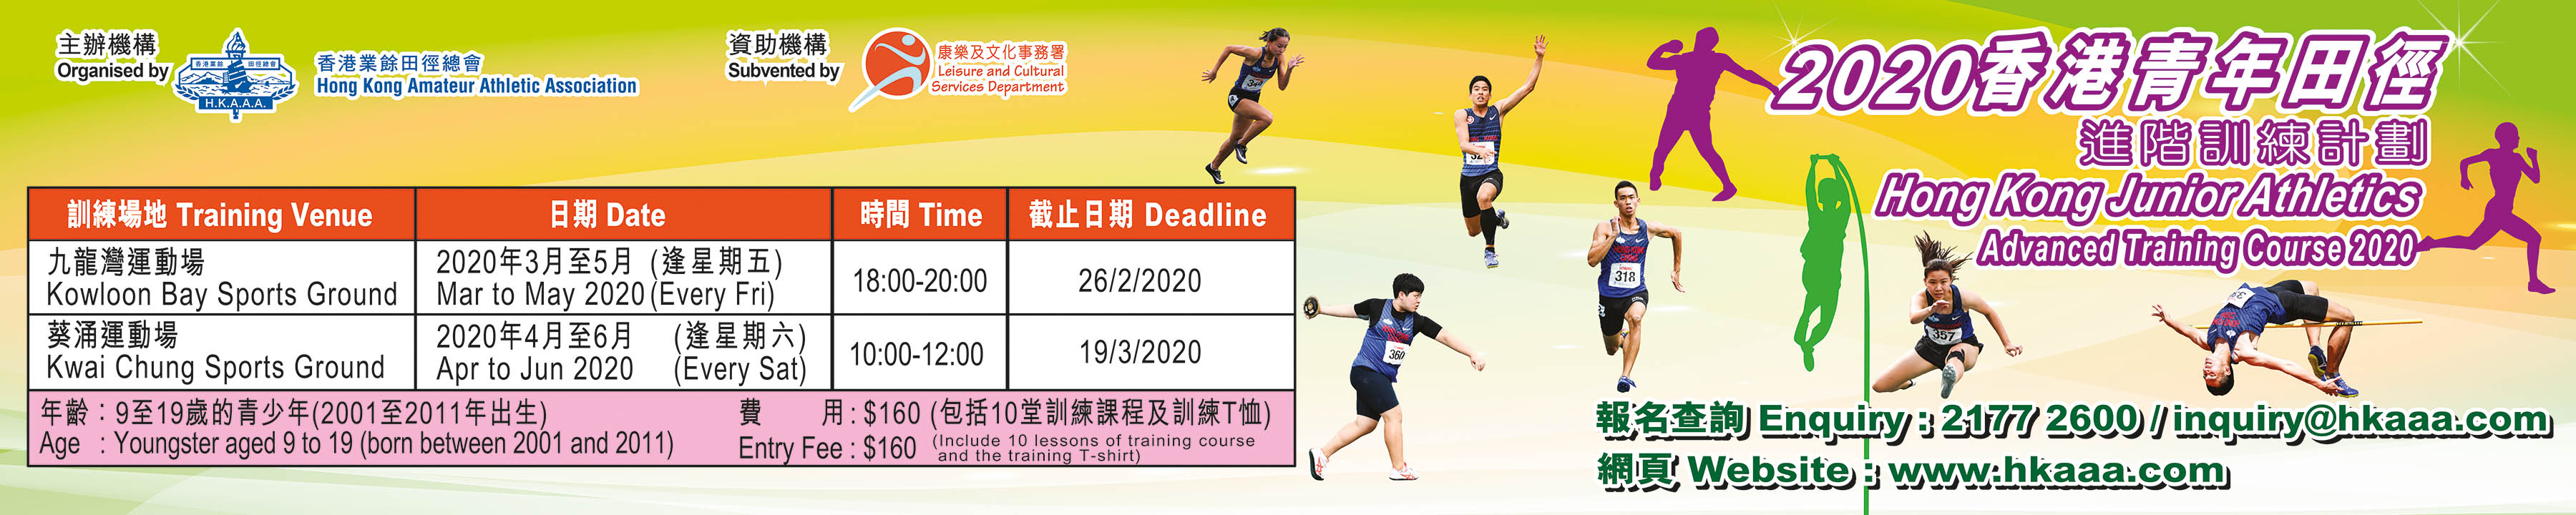 Hong Kong Junior Athletics Advanced Training Course 2020